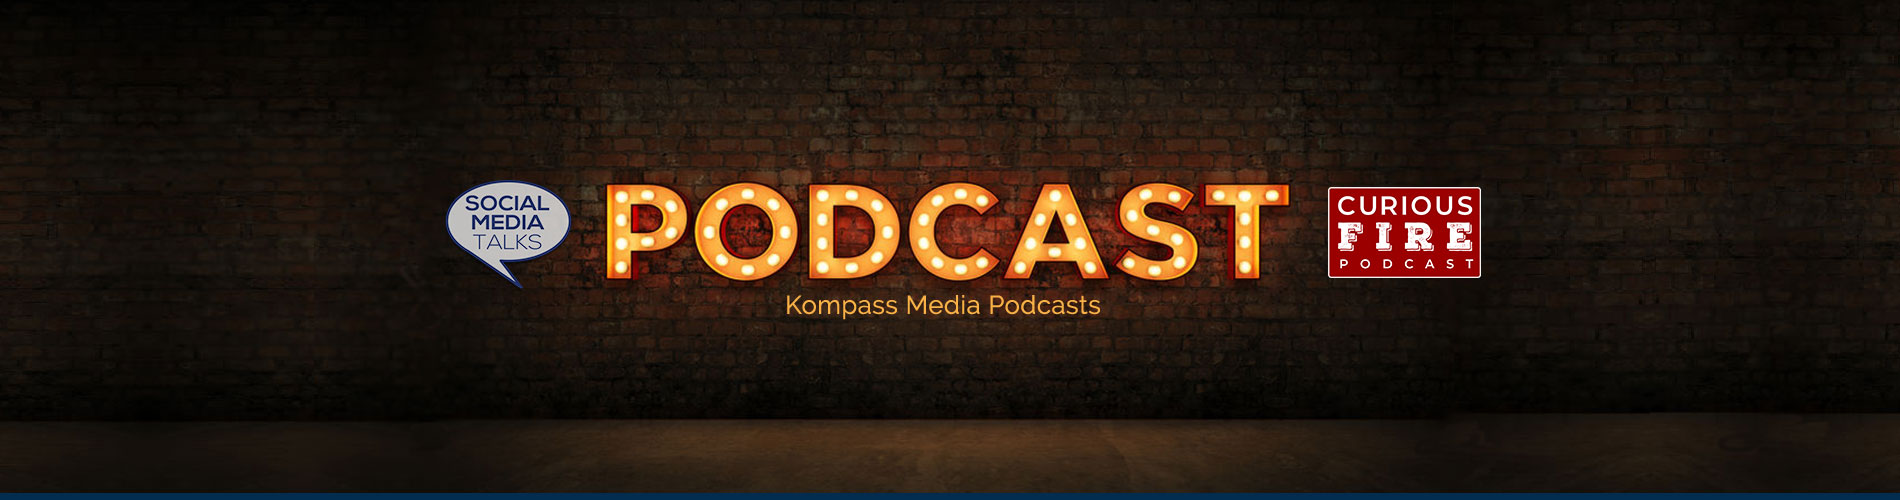 Kompass Media Podcasts The Social Media Talks Podcast and Curious Fire Podcast